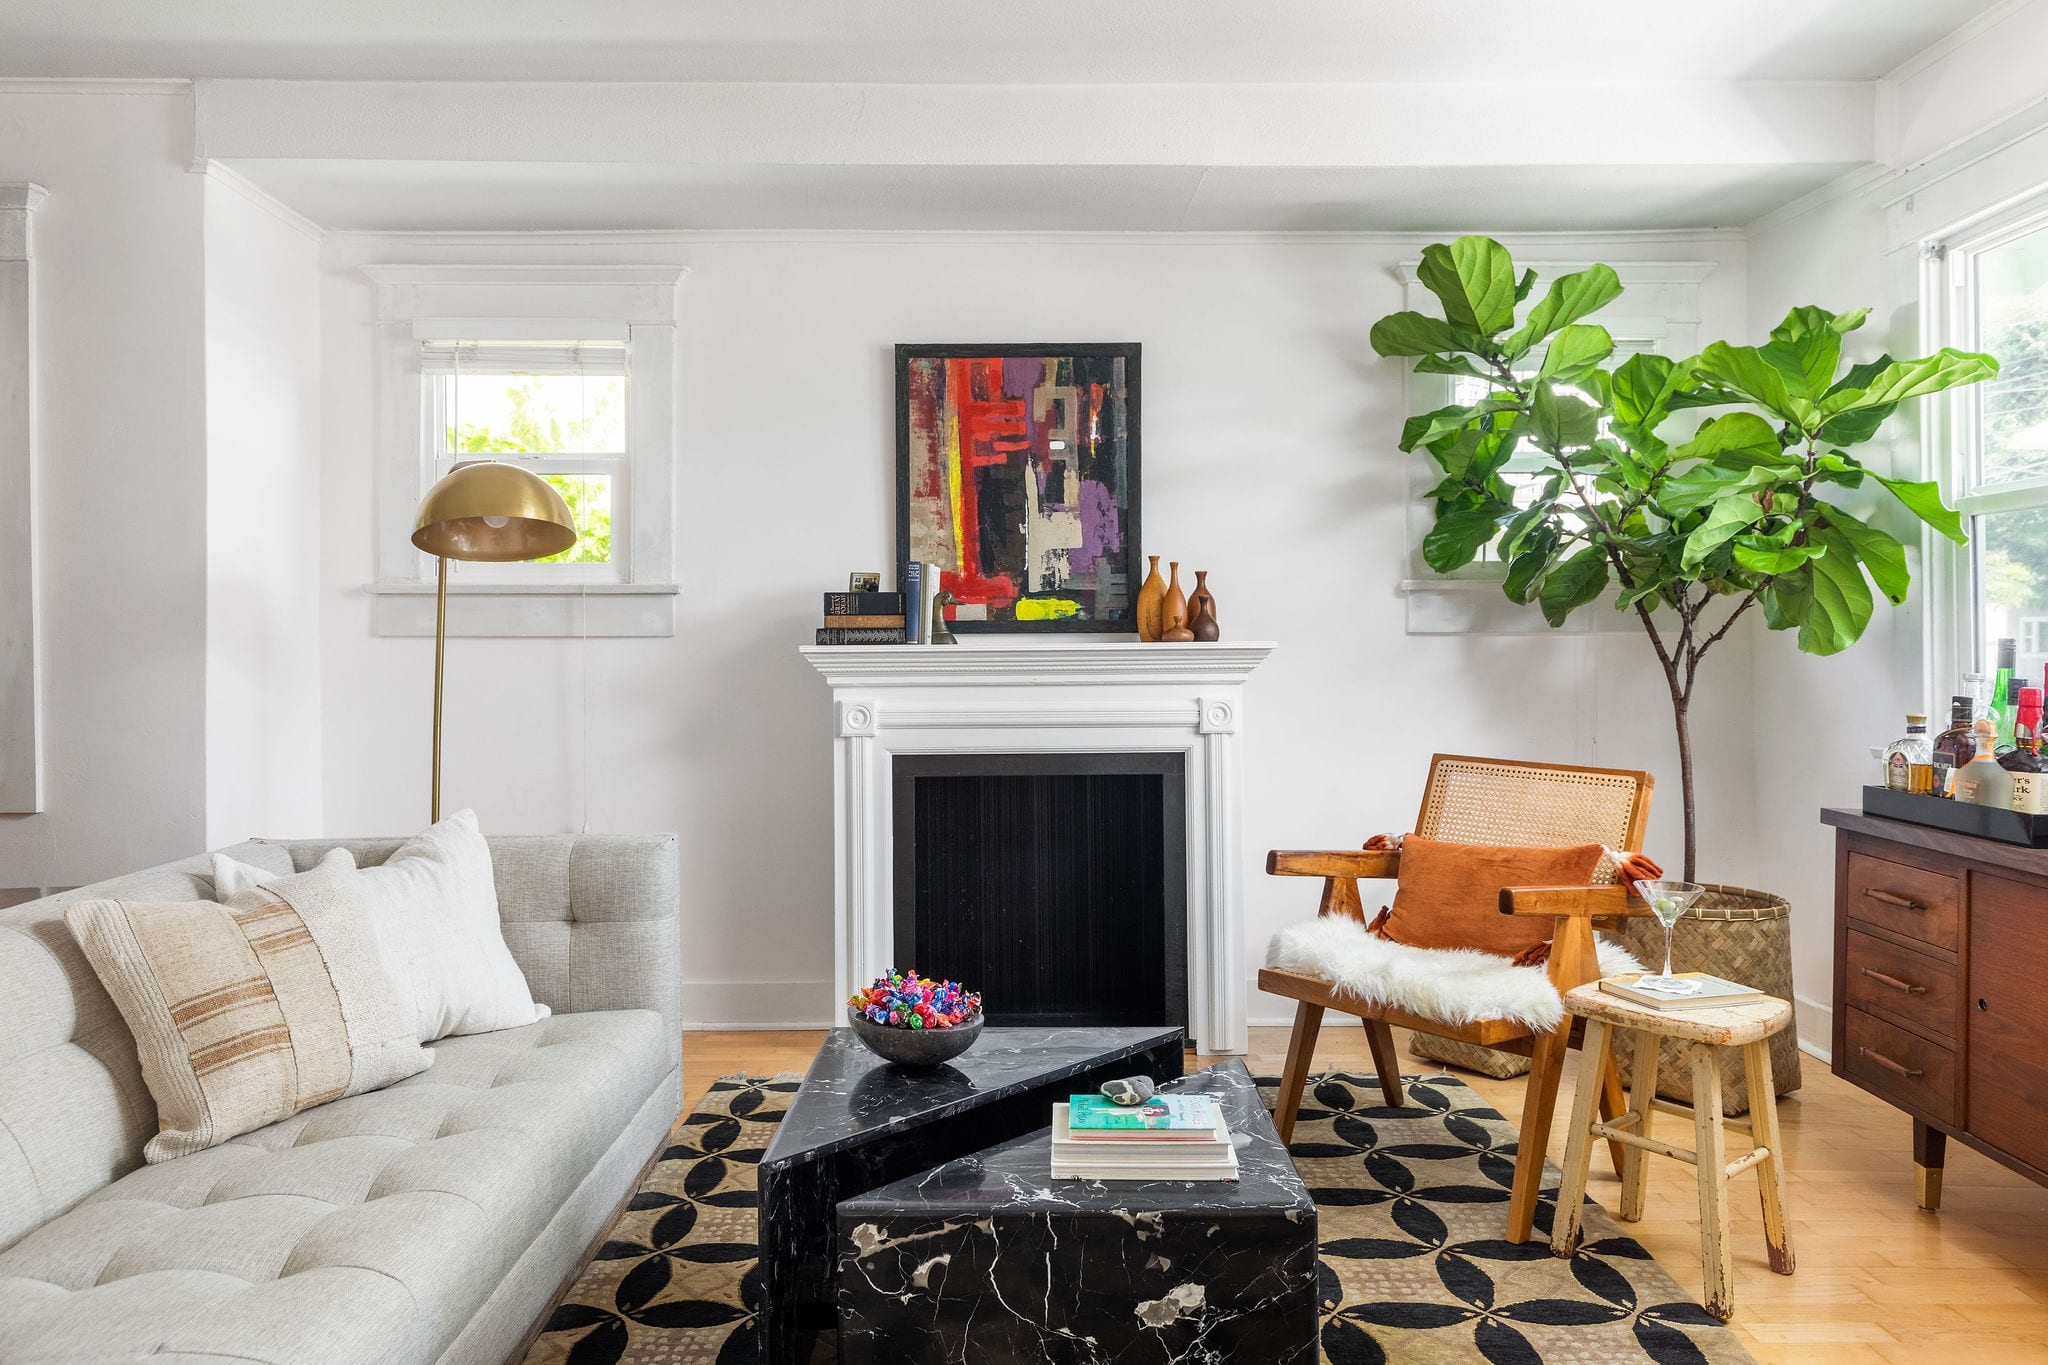 39th – Fireplace